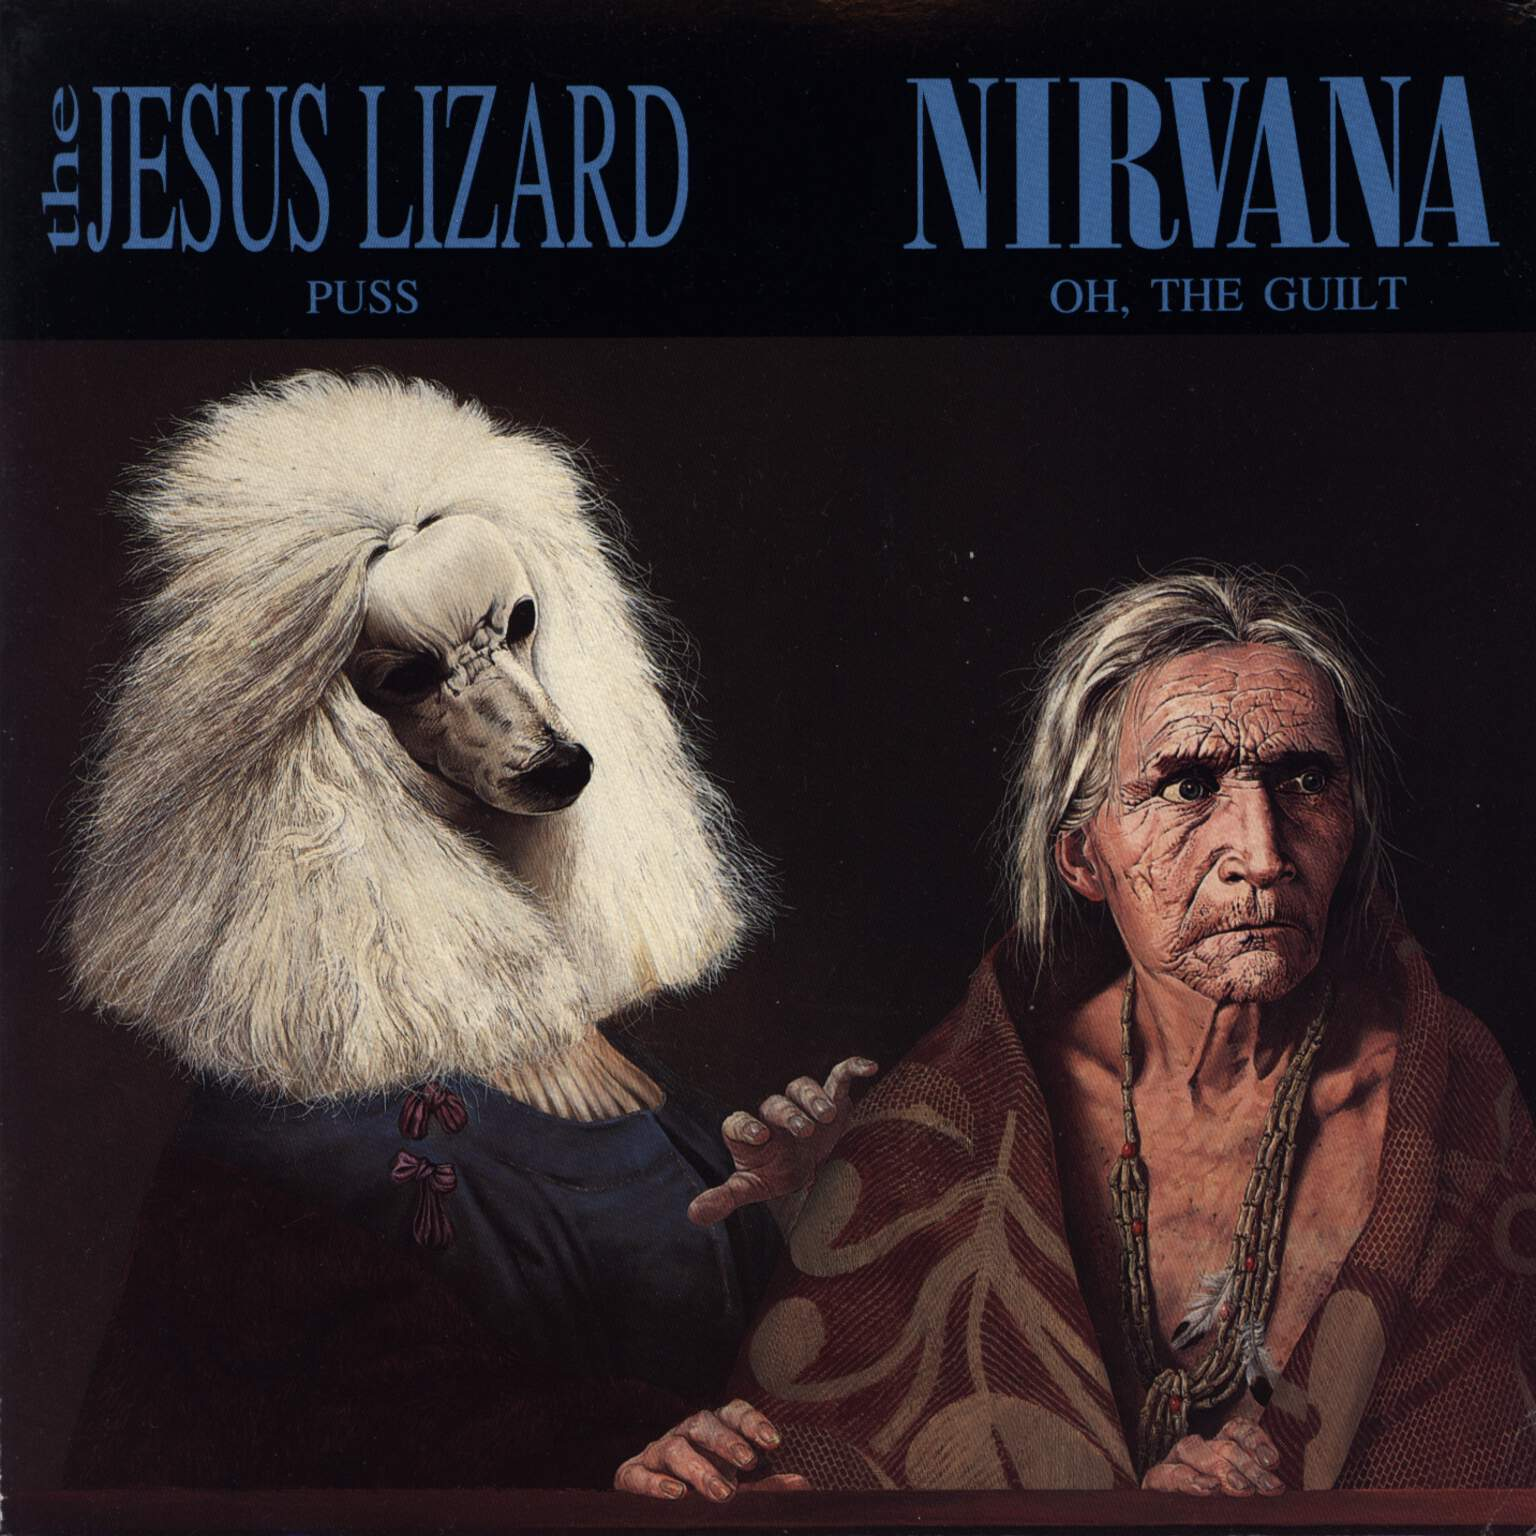 "The Jesus Lizard: Puss / Oh, The Guilt, 7"" Single (Vinyl)"